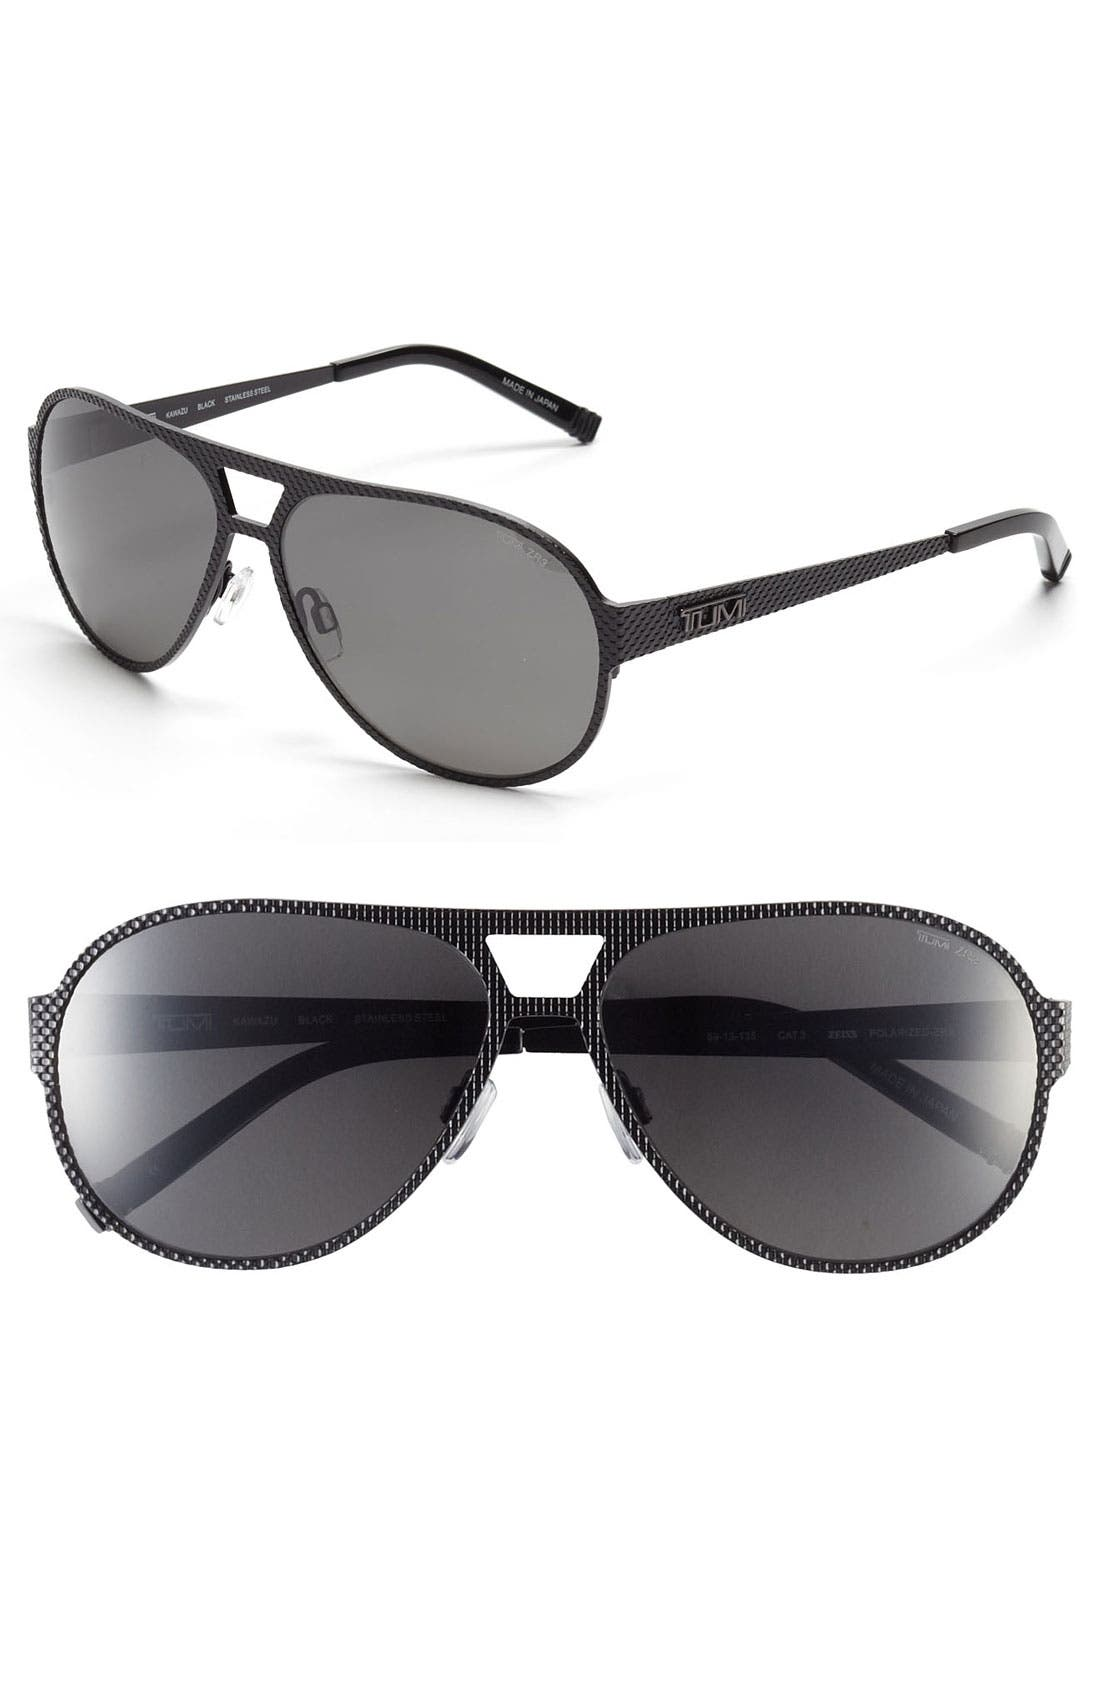 Alternate Image 1 Selected - Tumi 'Kawazu' 59mm Polarized Sunglasses